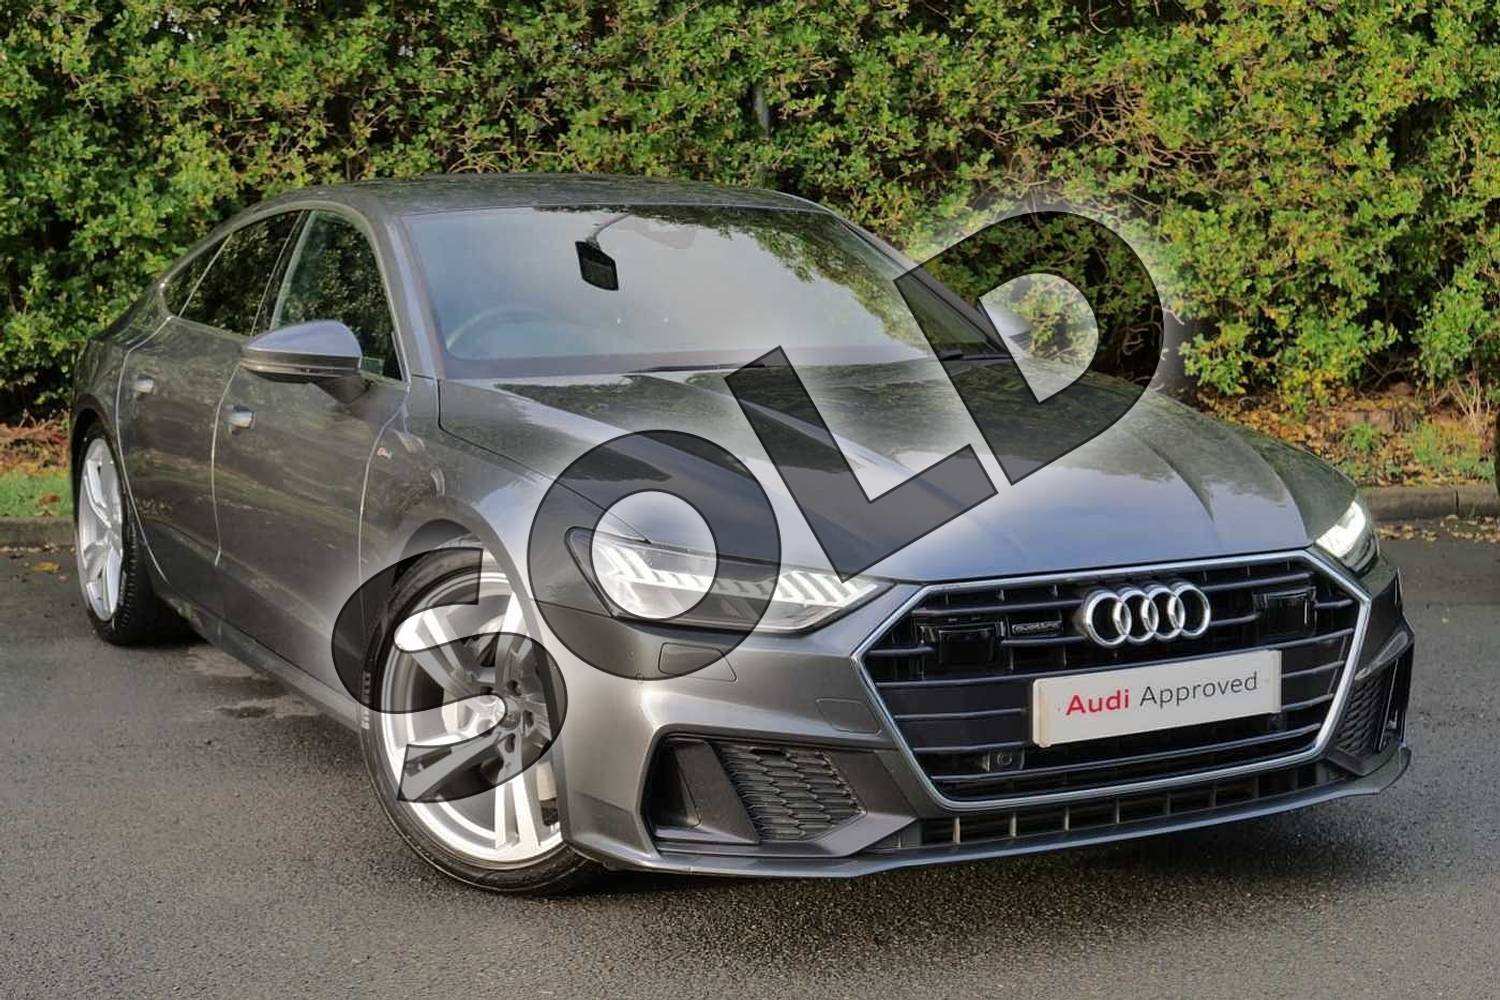 2018 Audi A7 Diesel Sportback 50 TDI Quattro S Line 5dr Tip Auto in Daytona Grey Pearlescent at Worcester Audi